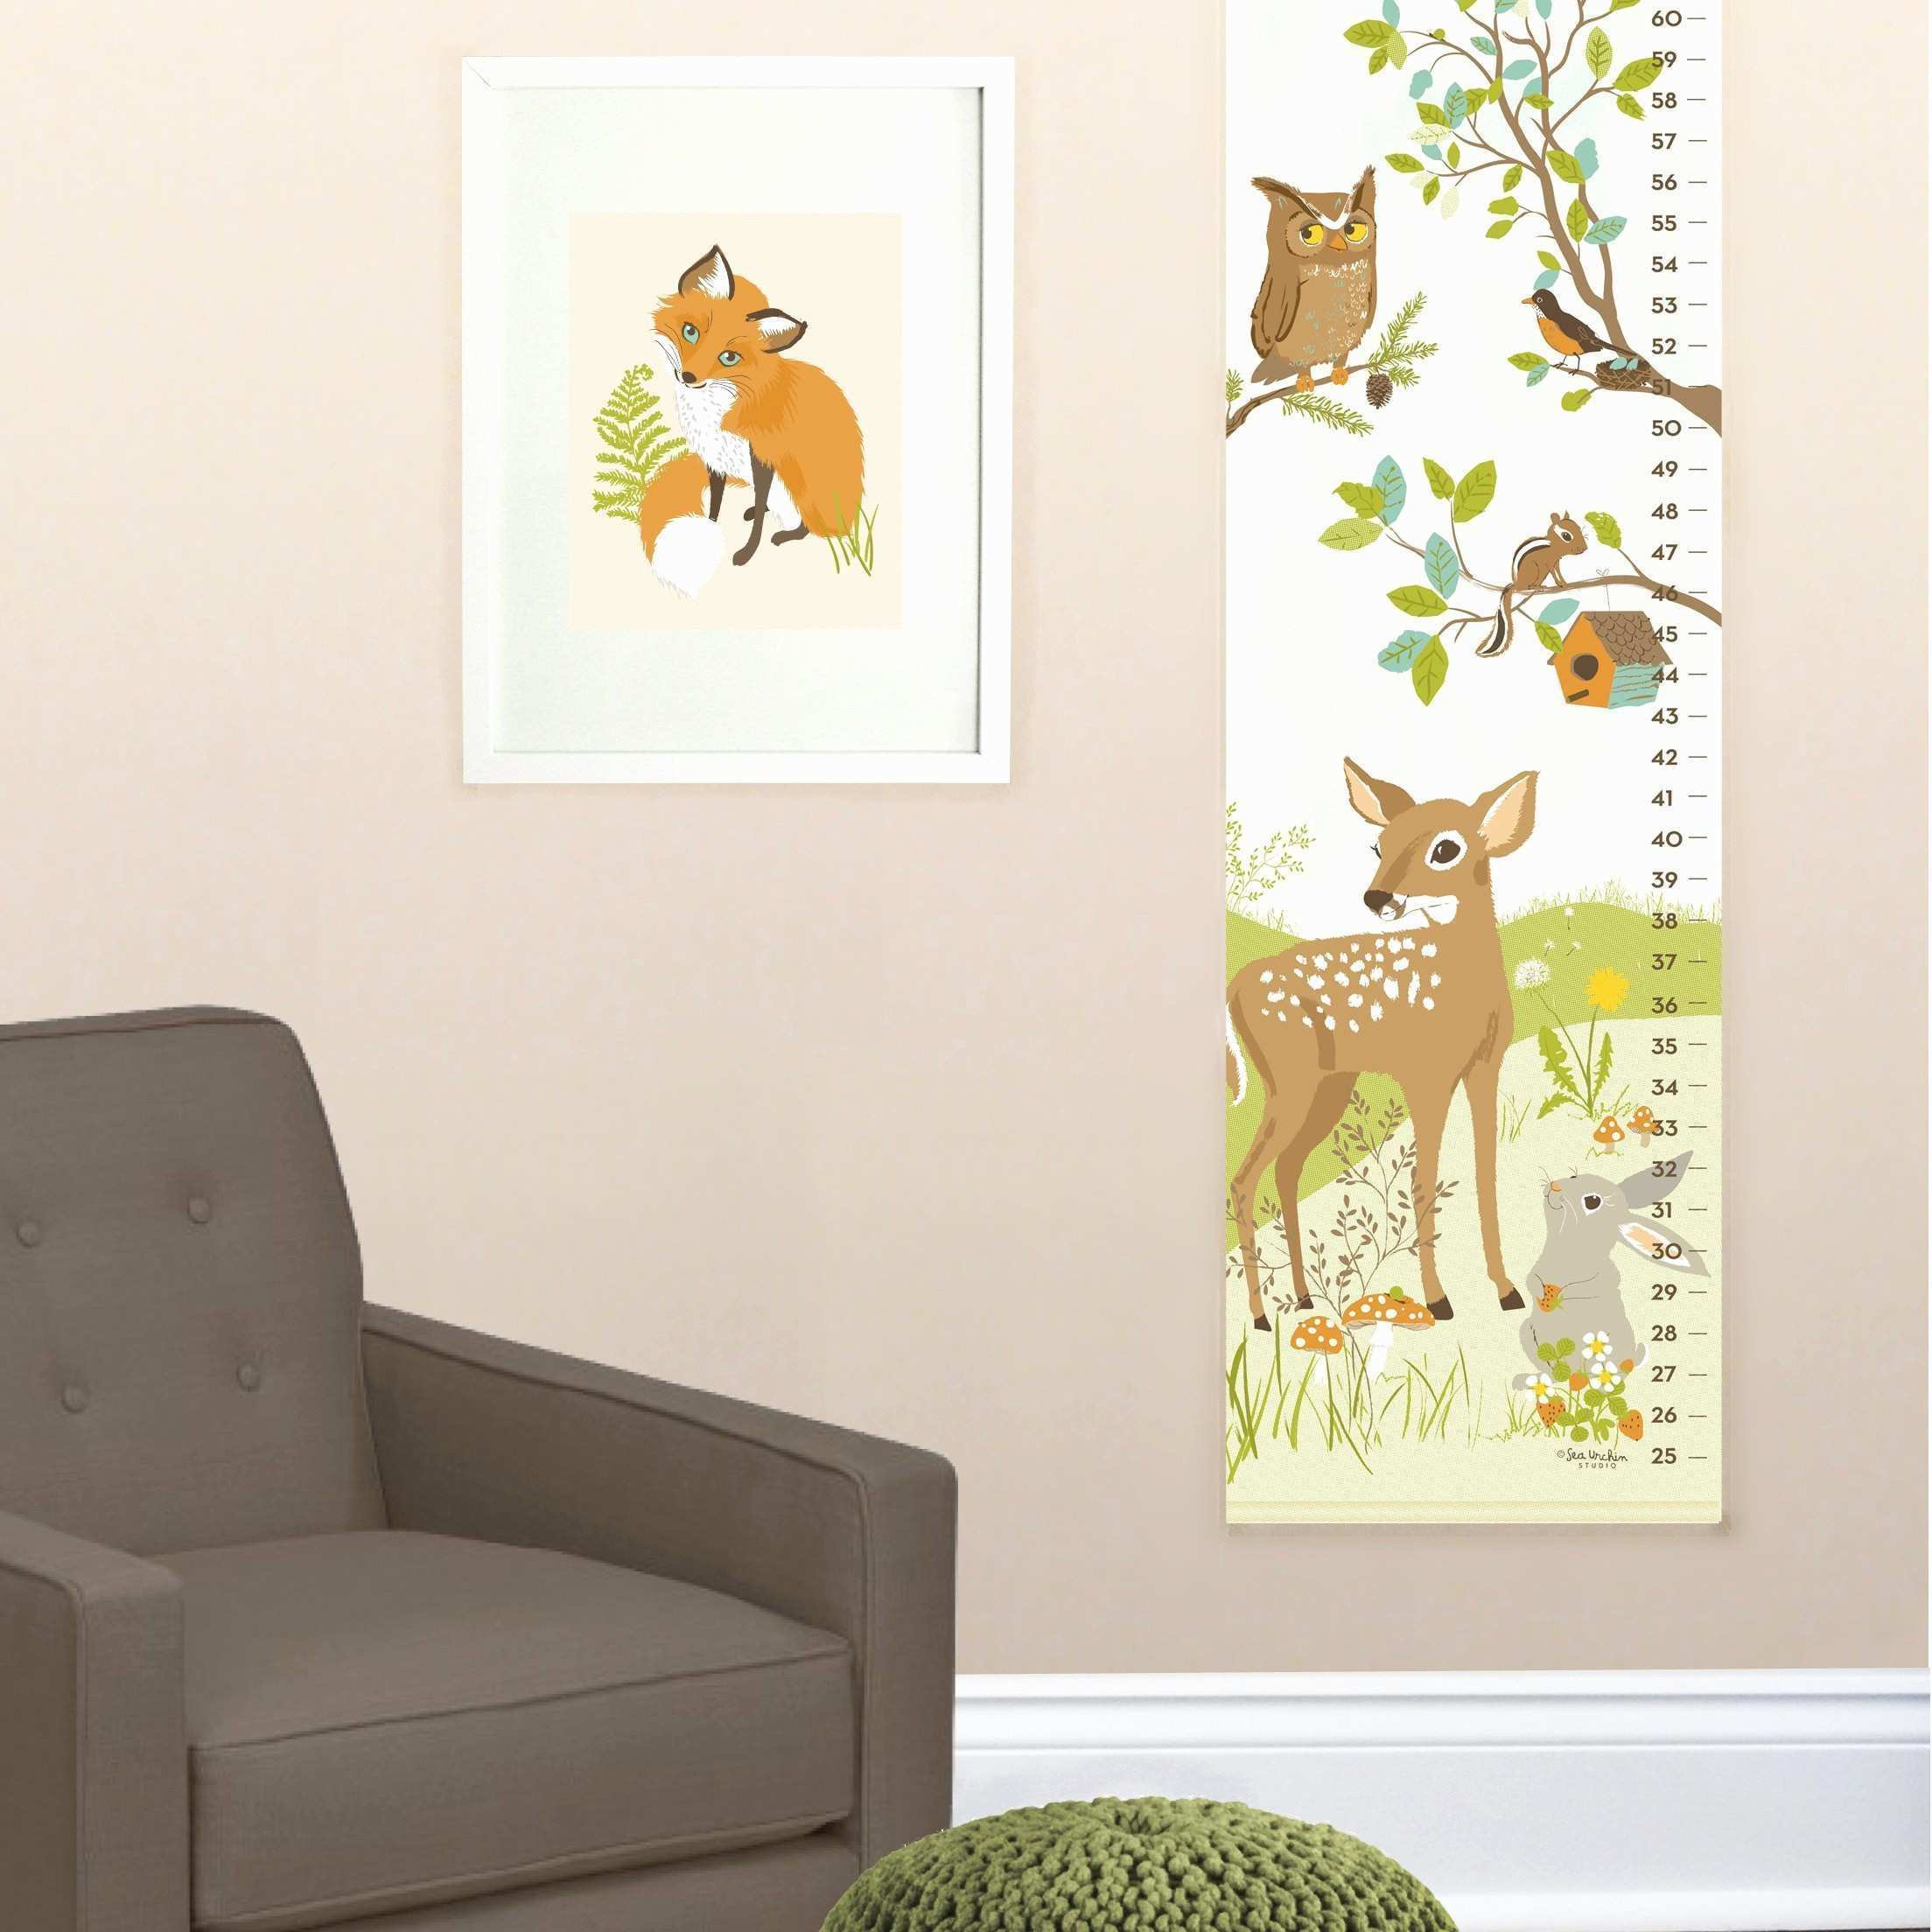 Home Wall Frames Fresh Wall Decal Luxury 1 Kirkland Wall Decor Home